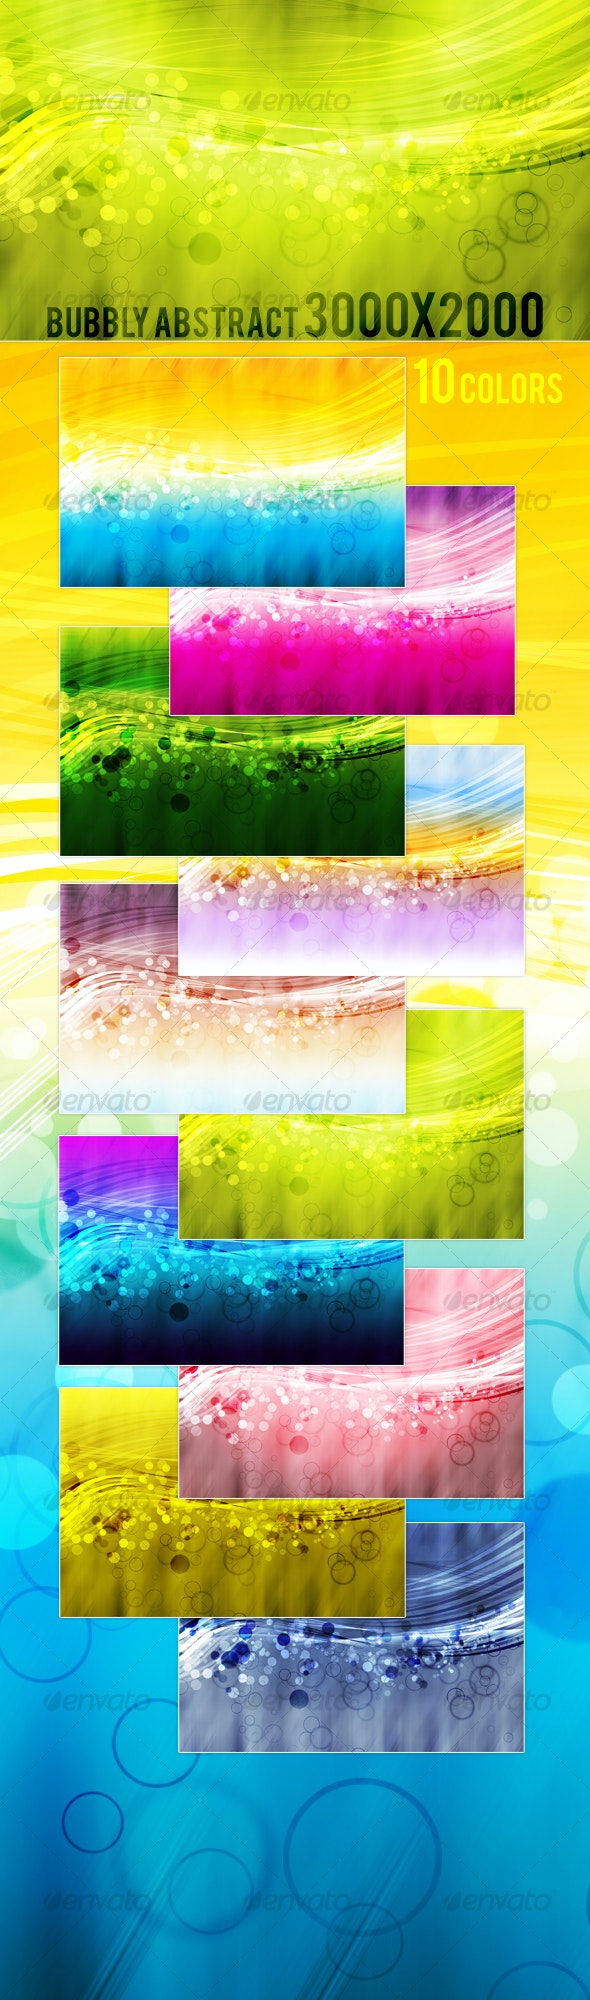 Bubbly Abstract Background Pack - Backgrounds Graphics